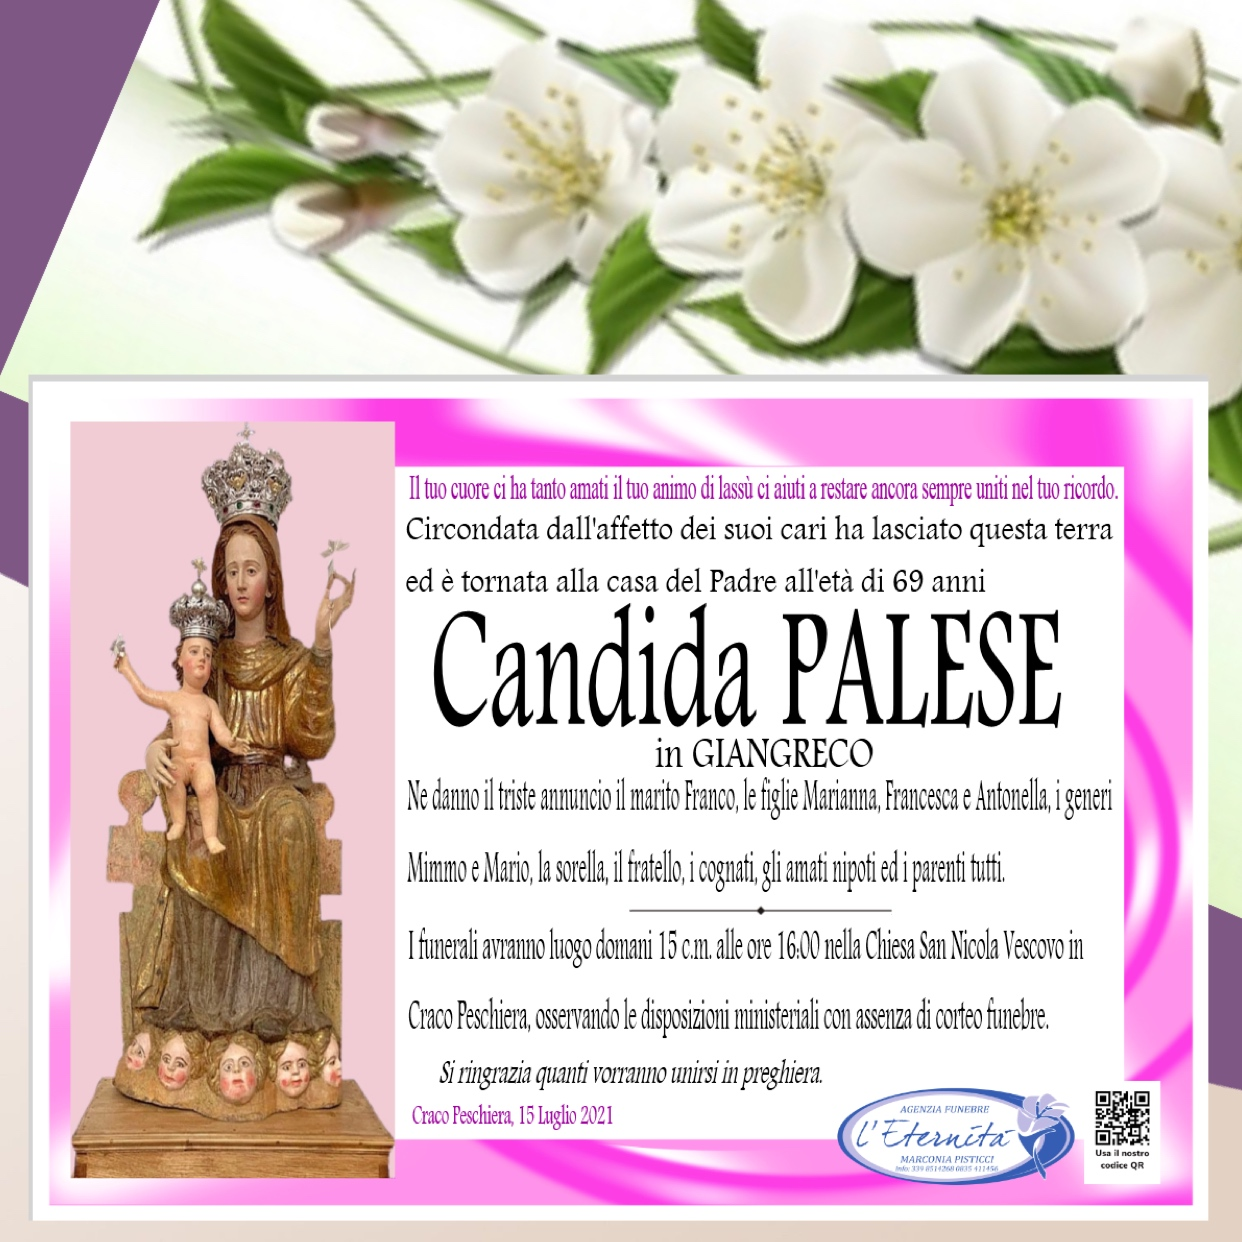 Candida PALESE